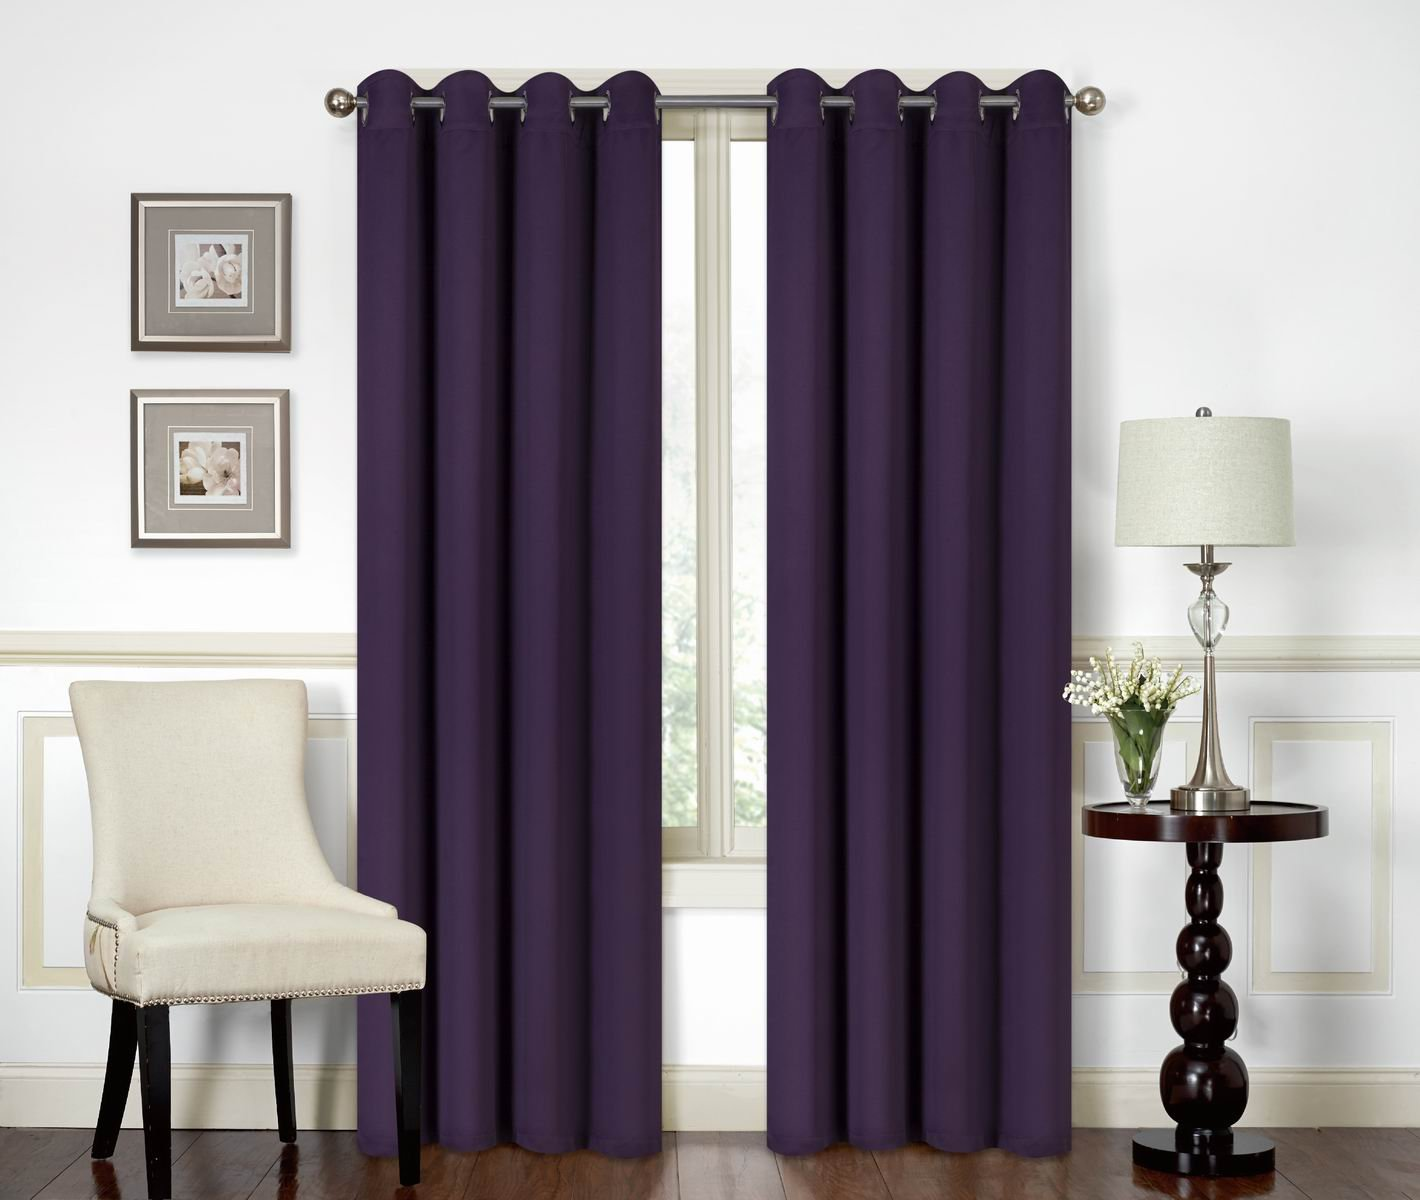 All American Collection New 2 Panel Curtain Set Solid Machine Woven Blackout with 8 Grommets Purple